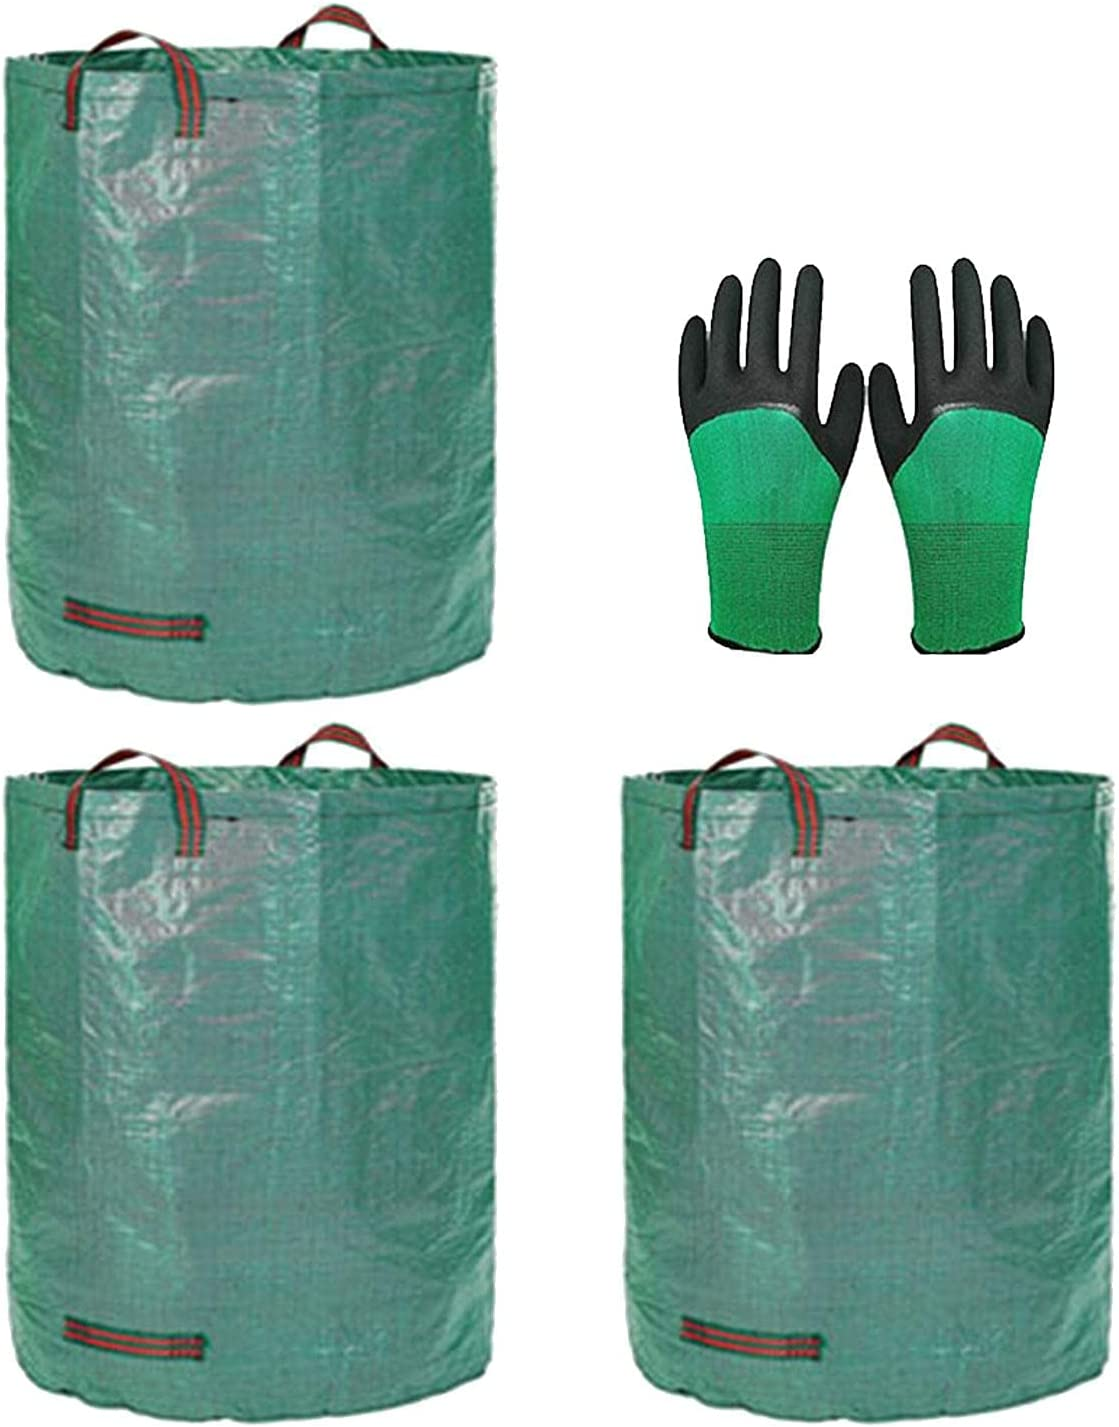 HONUTIGE 3PCS Our shop OFFers the best service Garden overseas Waste Bag Heavy Duty Yard Handle with Bags